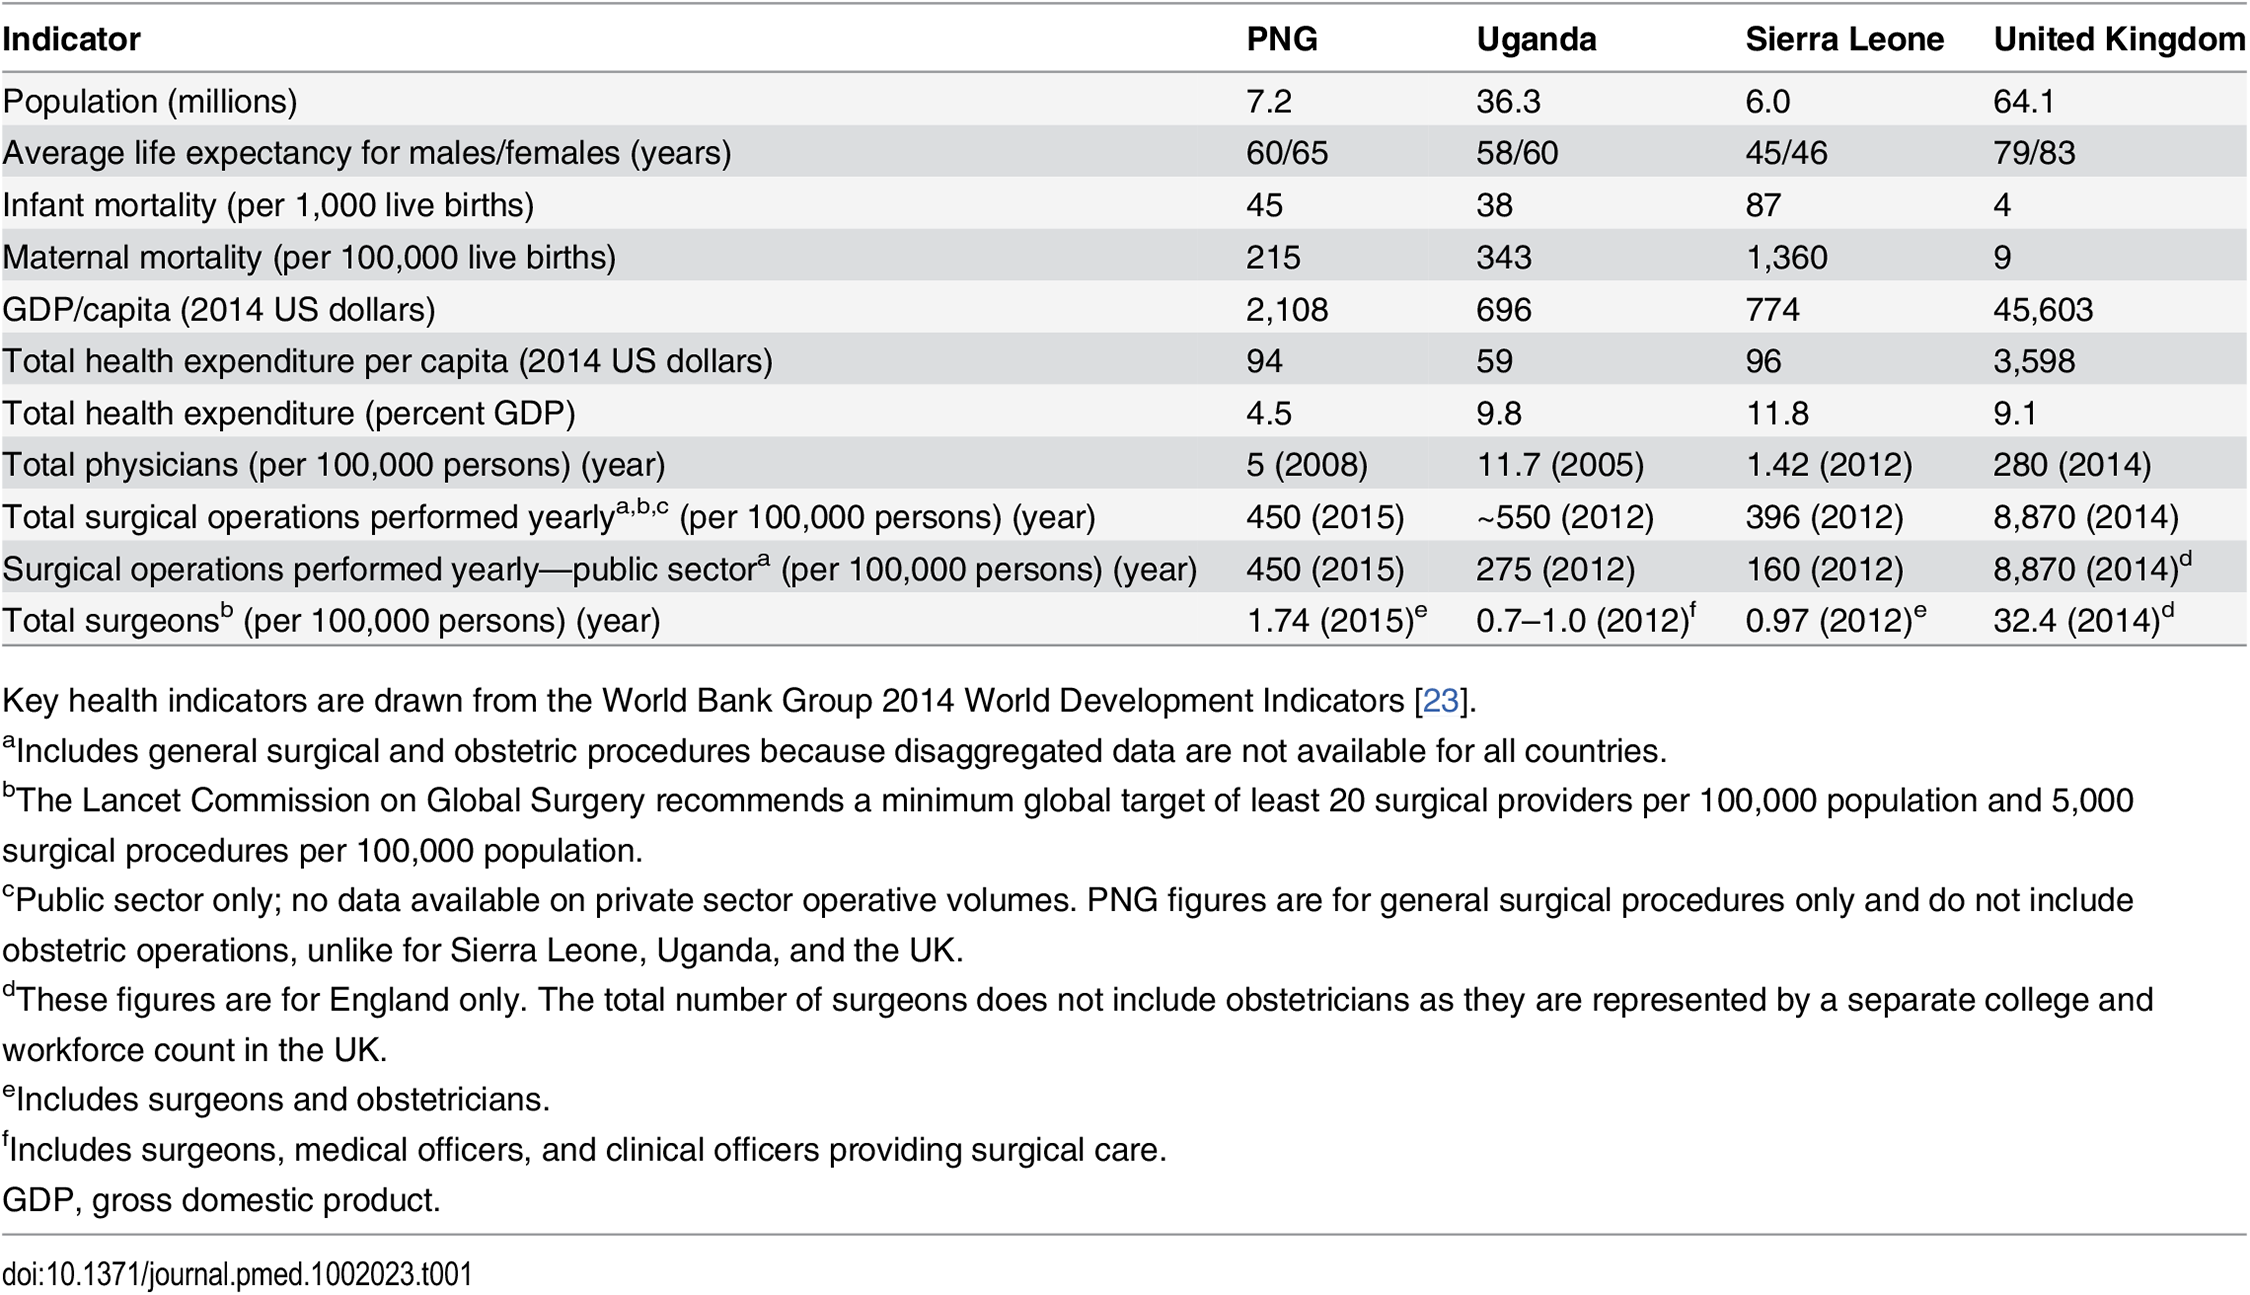 Key health and surgical indicators in the case countries and a high-income setting, for comparison.